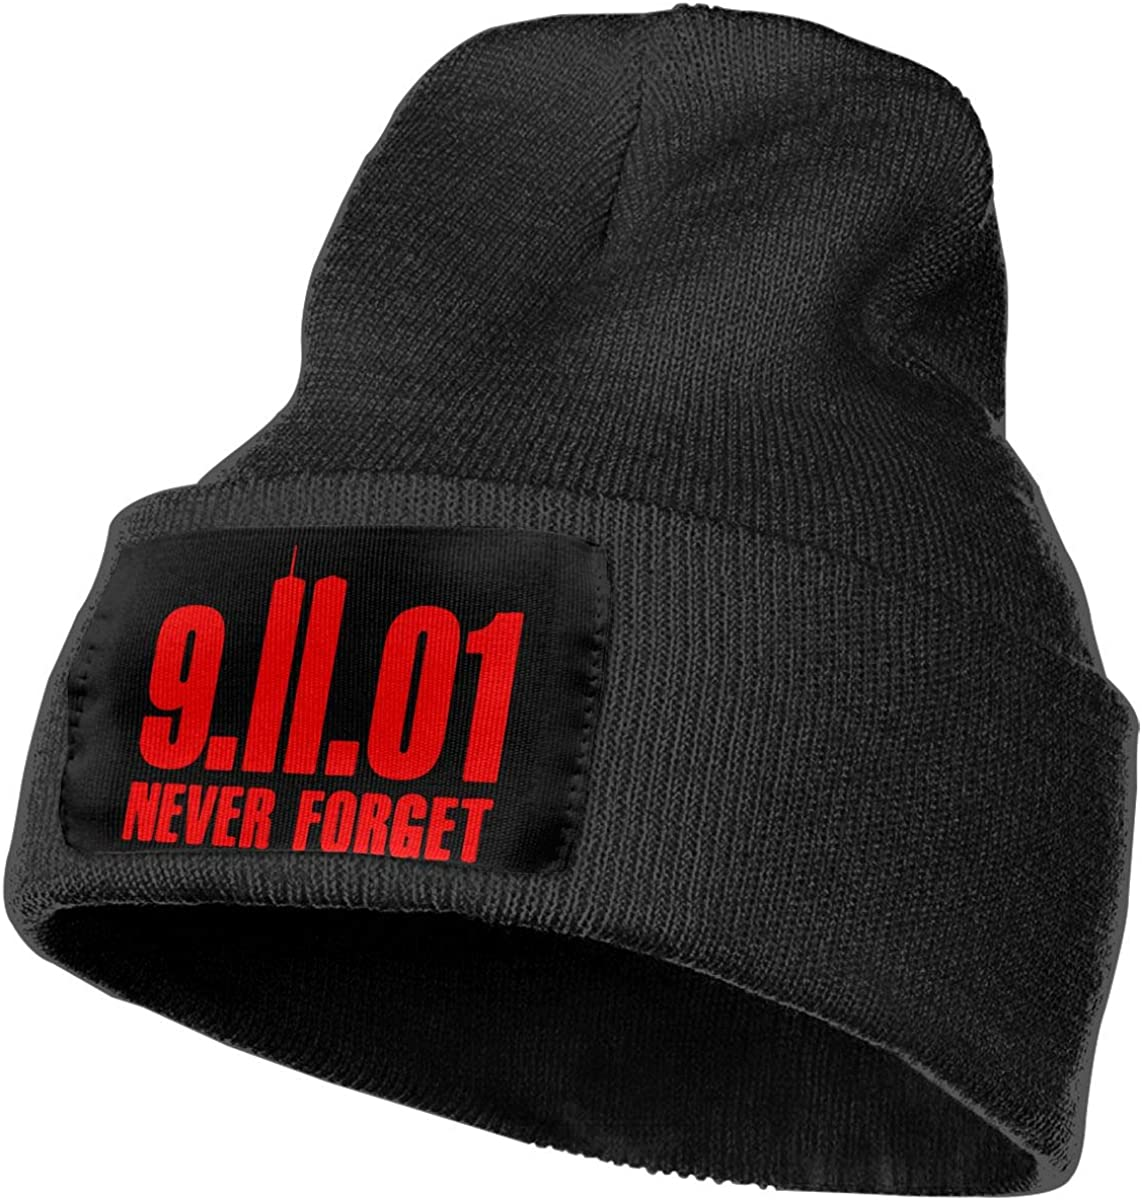 COLLJL-8 Men /& Women 911 Never Forget Towers Outdoor Stretch Knit Beanies Hat Soft Winter Skull Caps